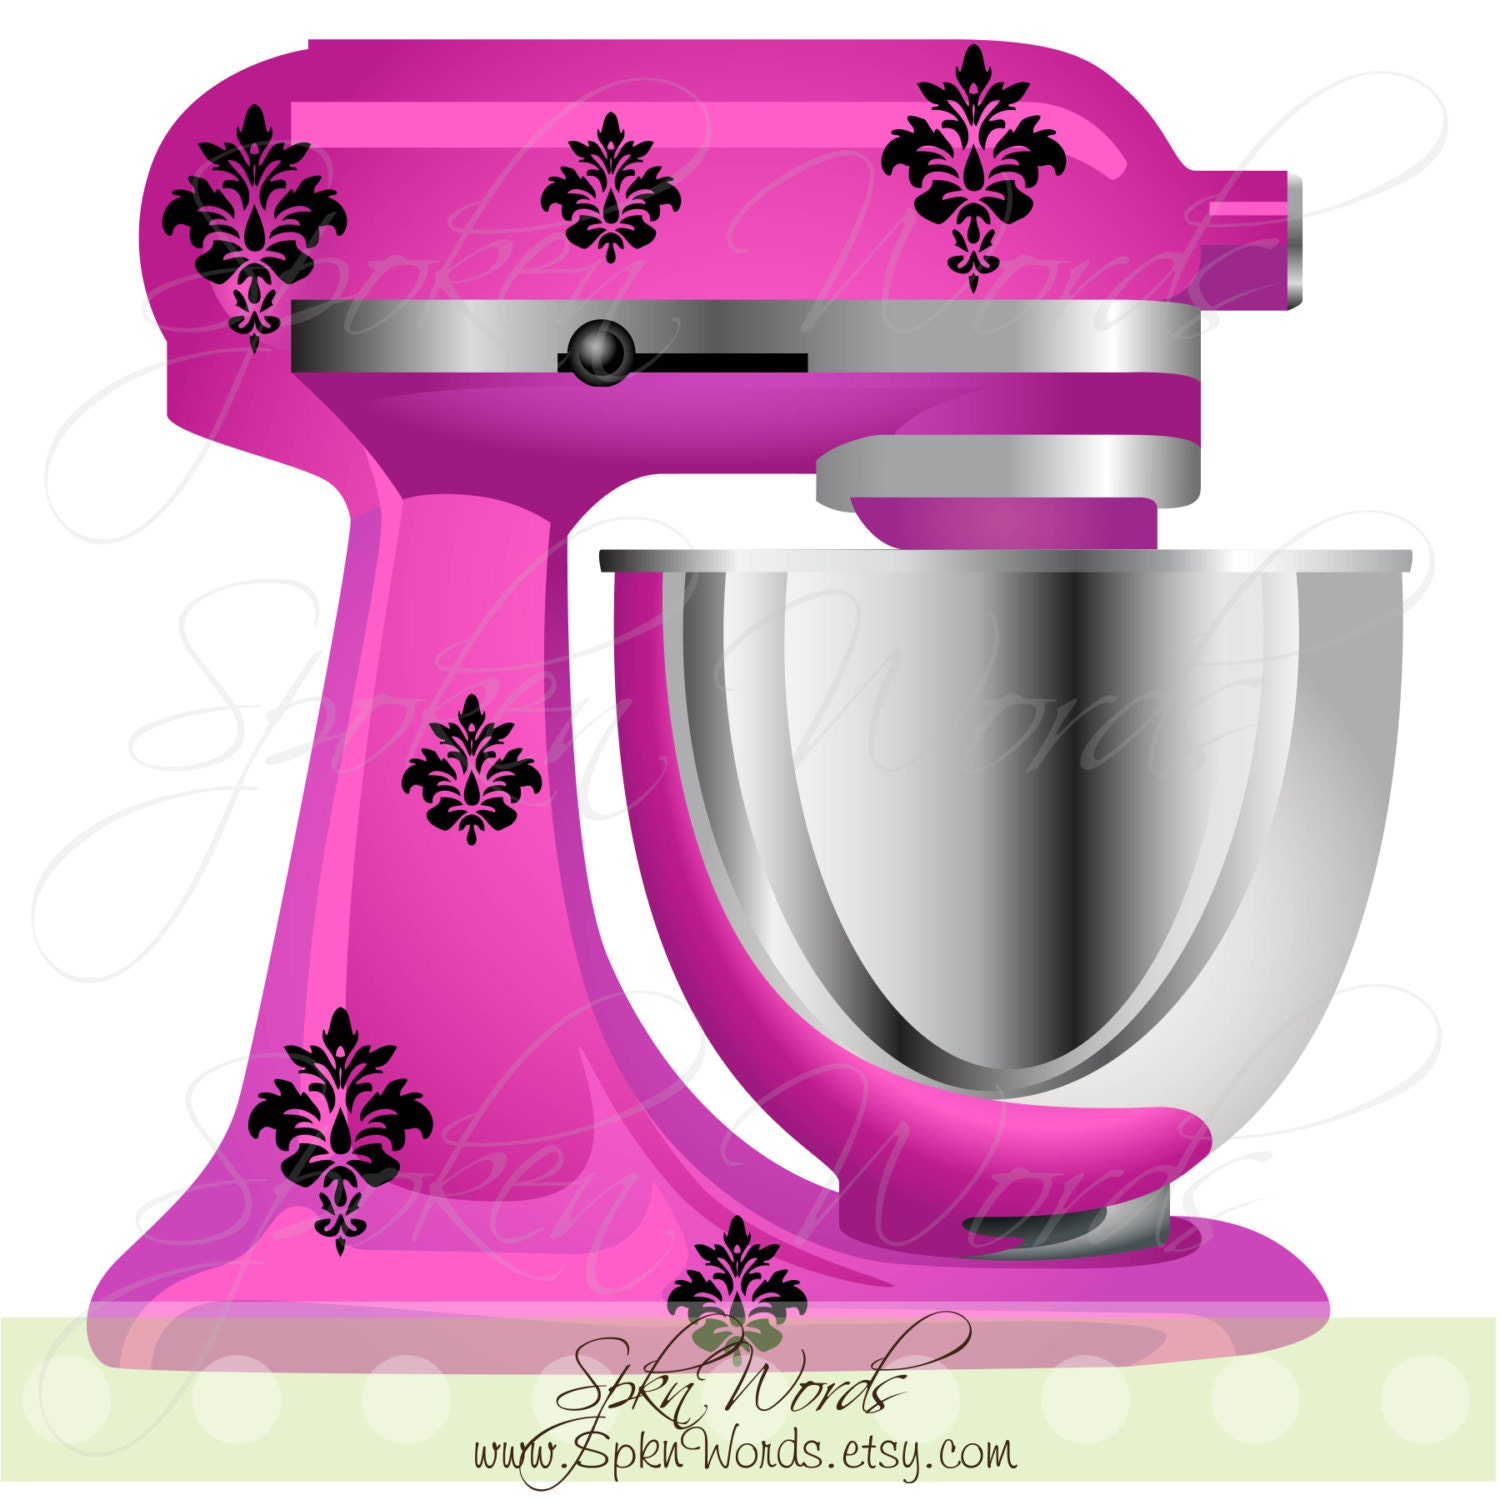 Kitchenaid Mixer Damask Decals Decoration Vinyl Decal For